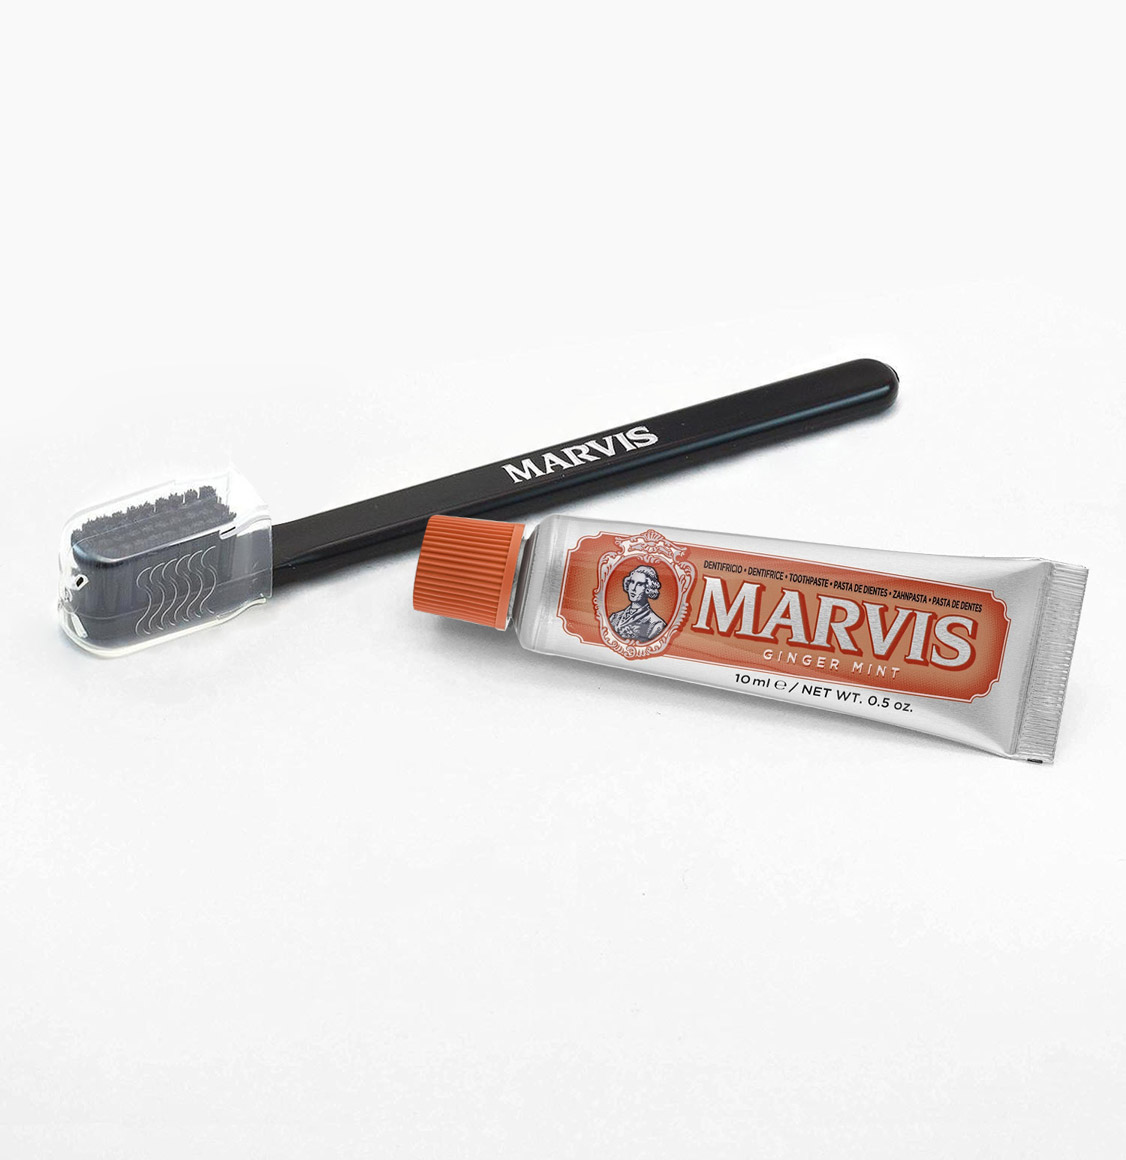 Marvis Ginger Mint Toothpaste 10ml